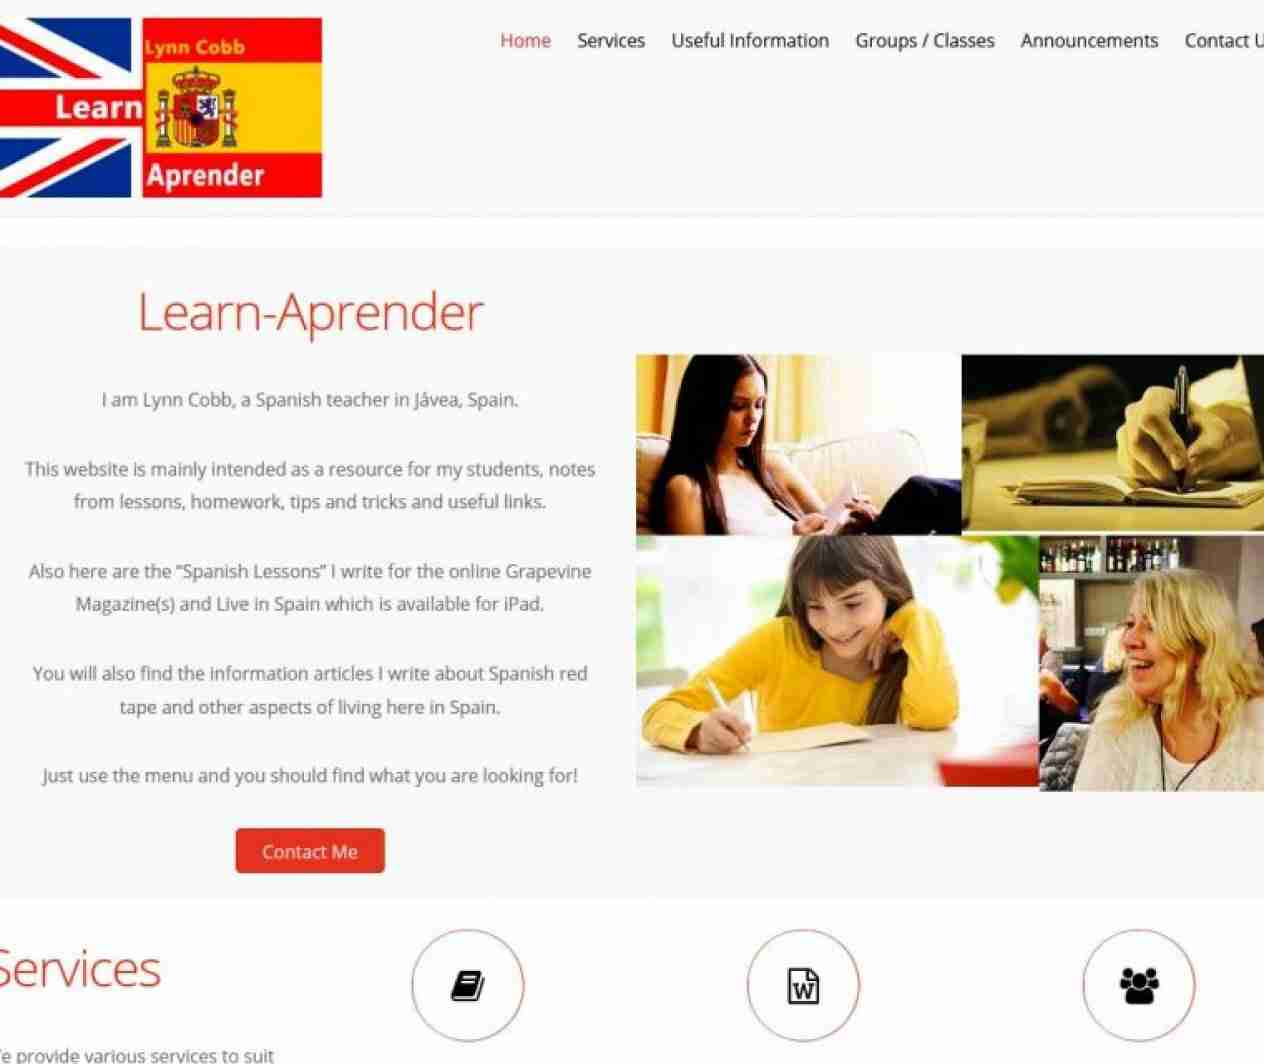 Learn-Aprender screen